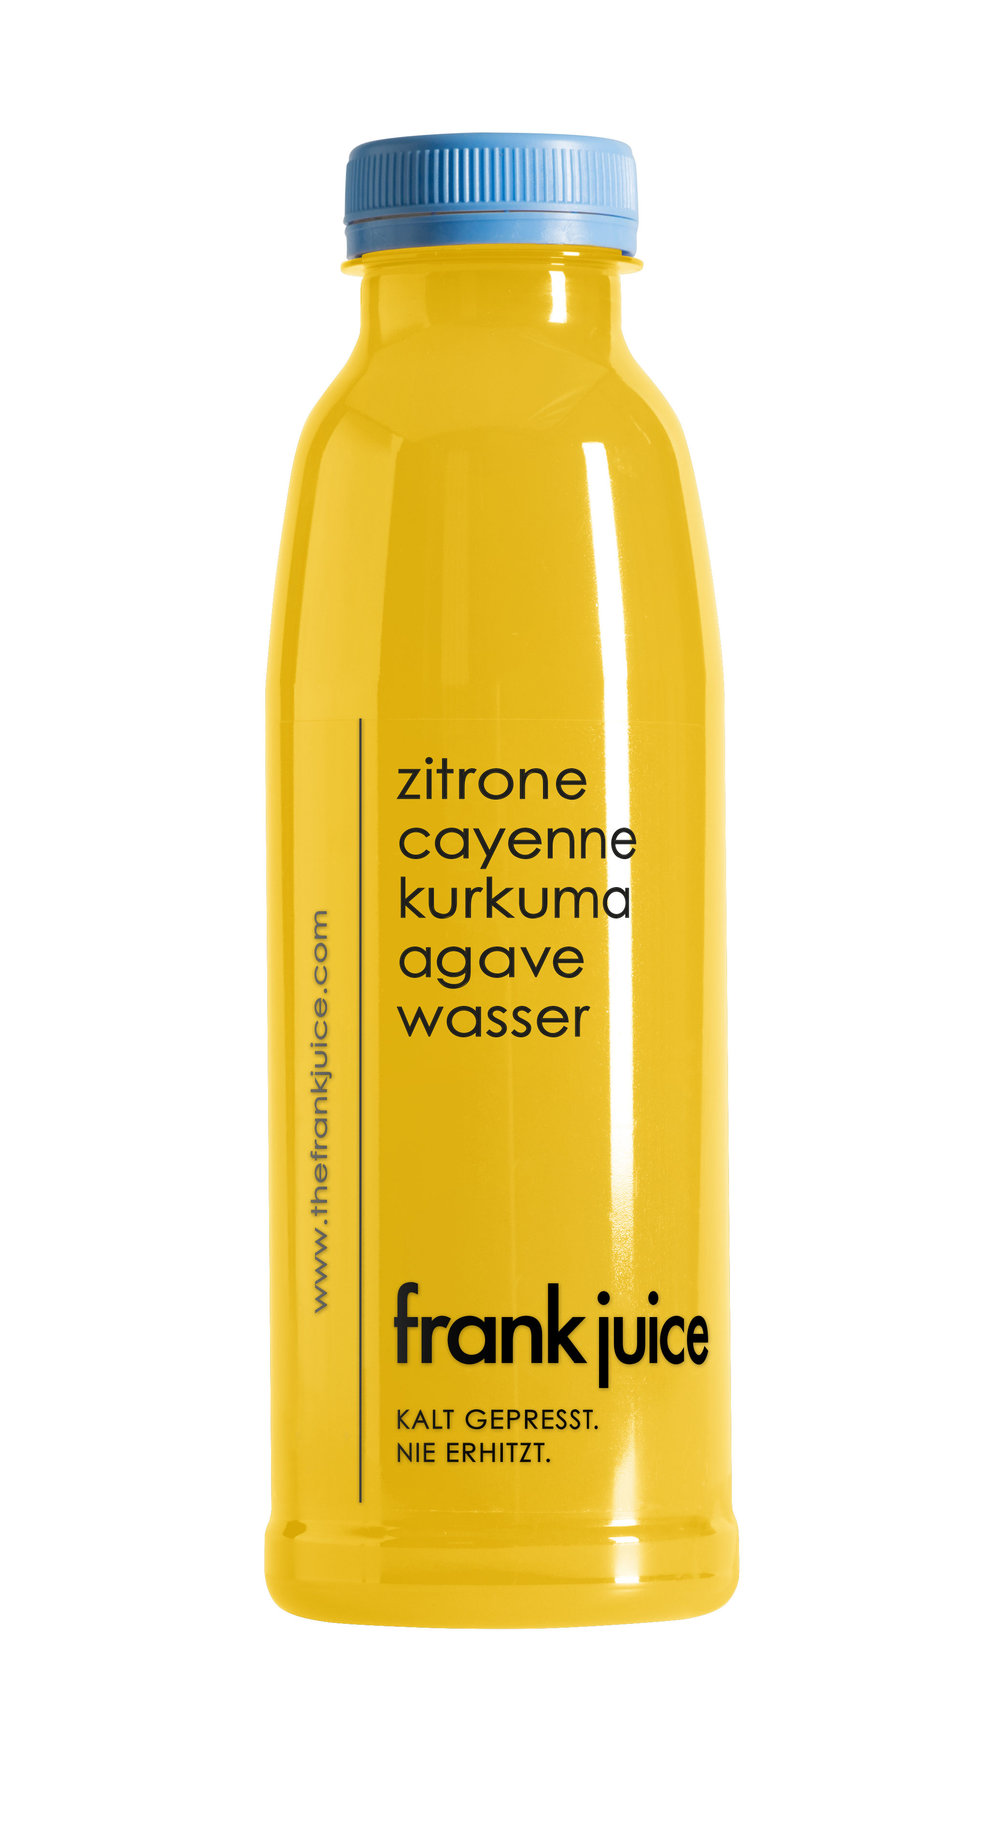 Juice #1 by Frank Juices